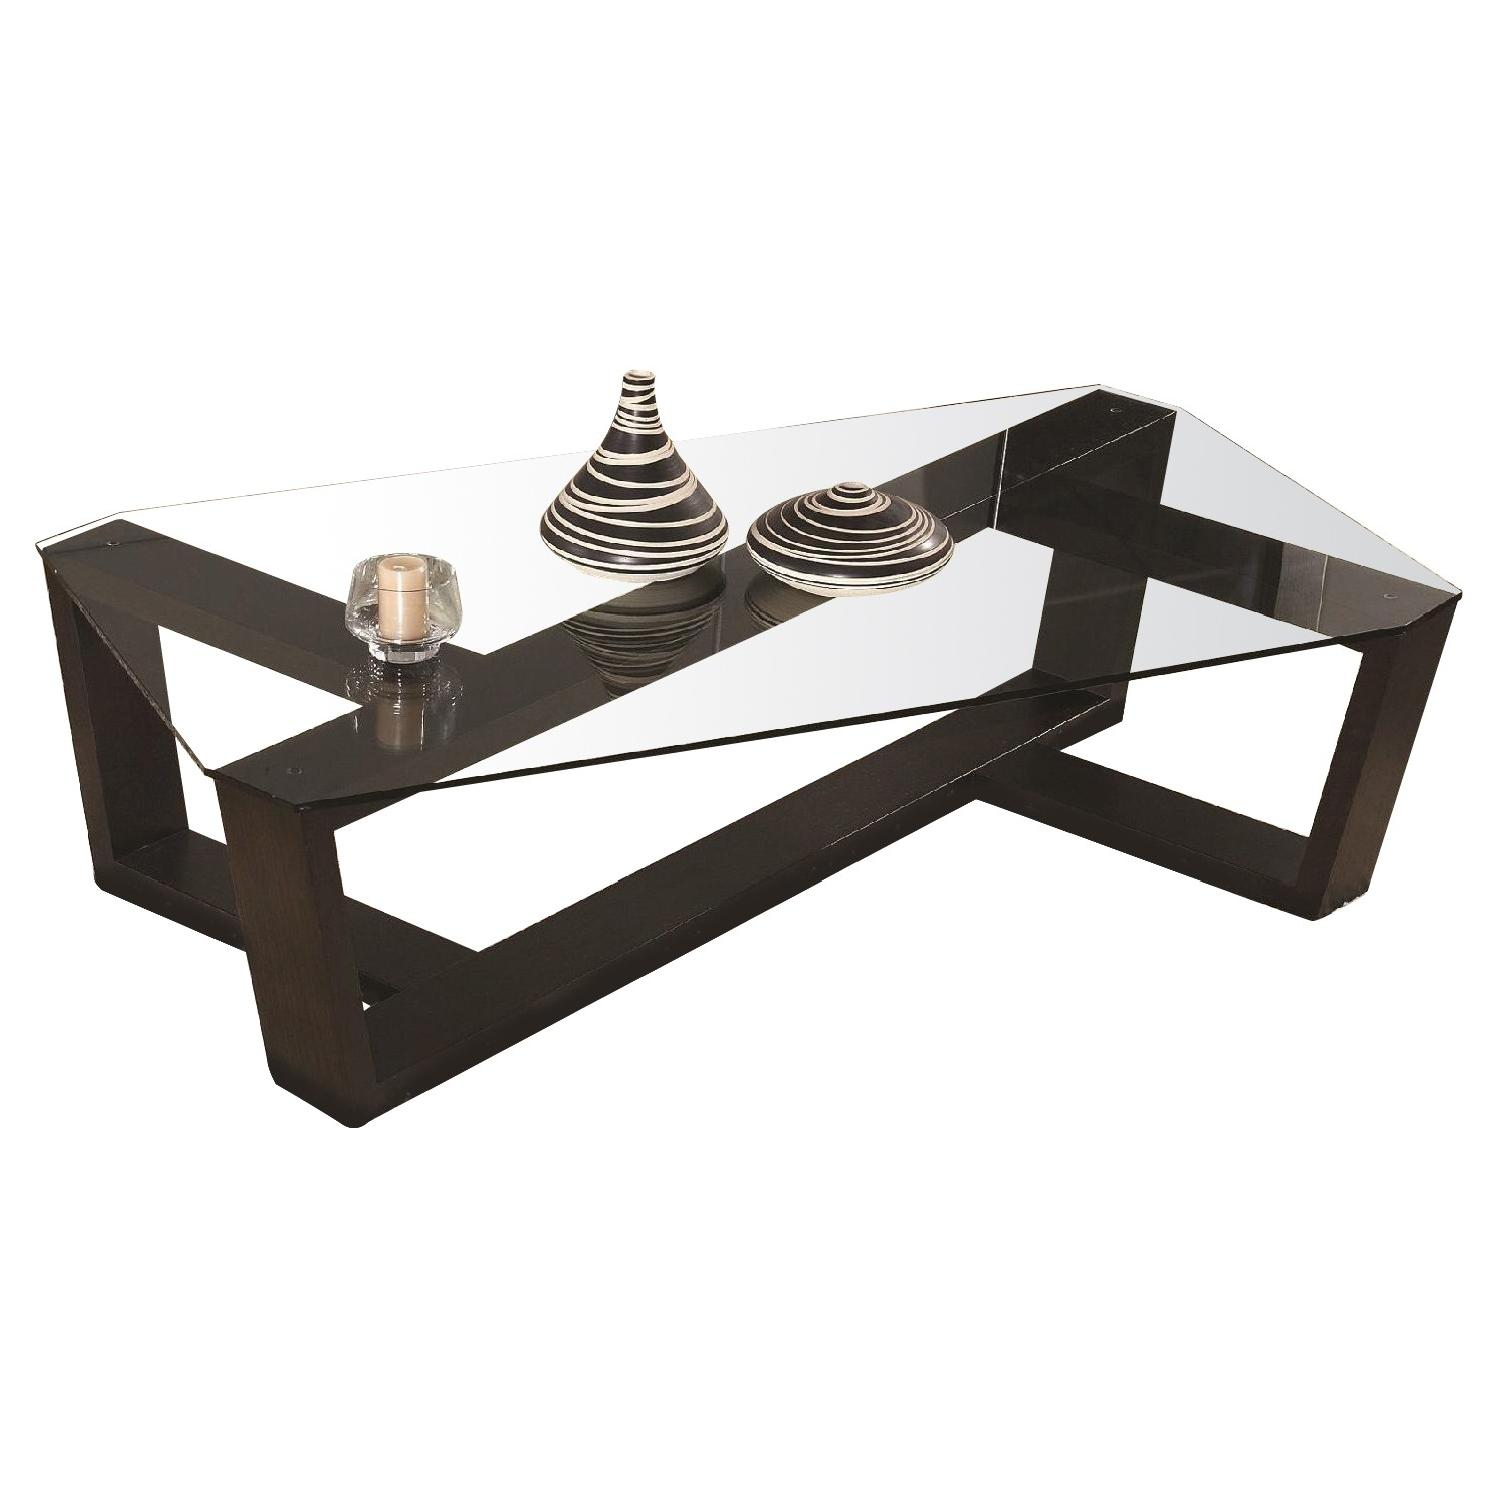 Modern Coffee Table in Wenge Finish w/ Crisscross Framed & T